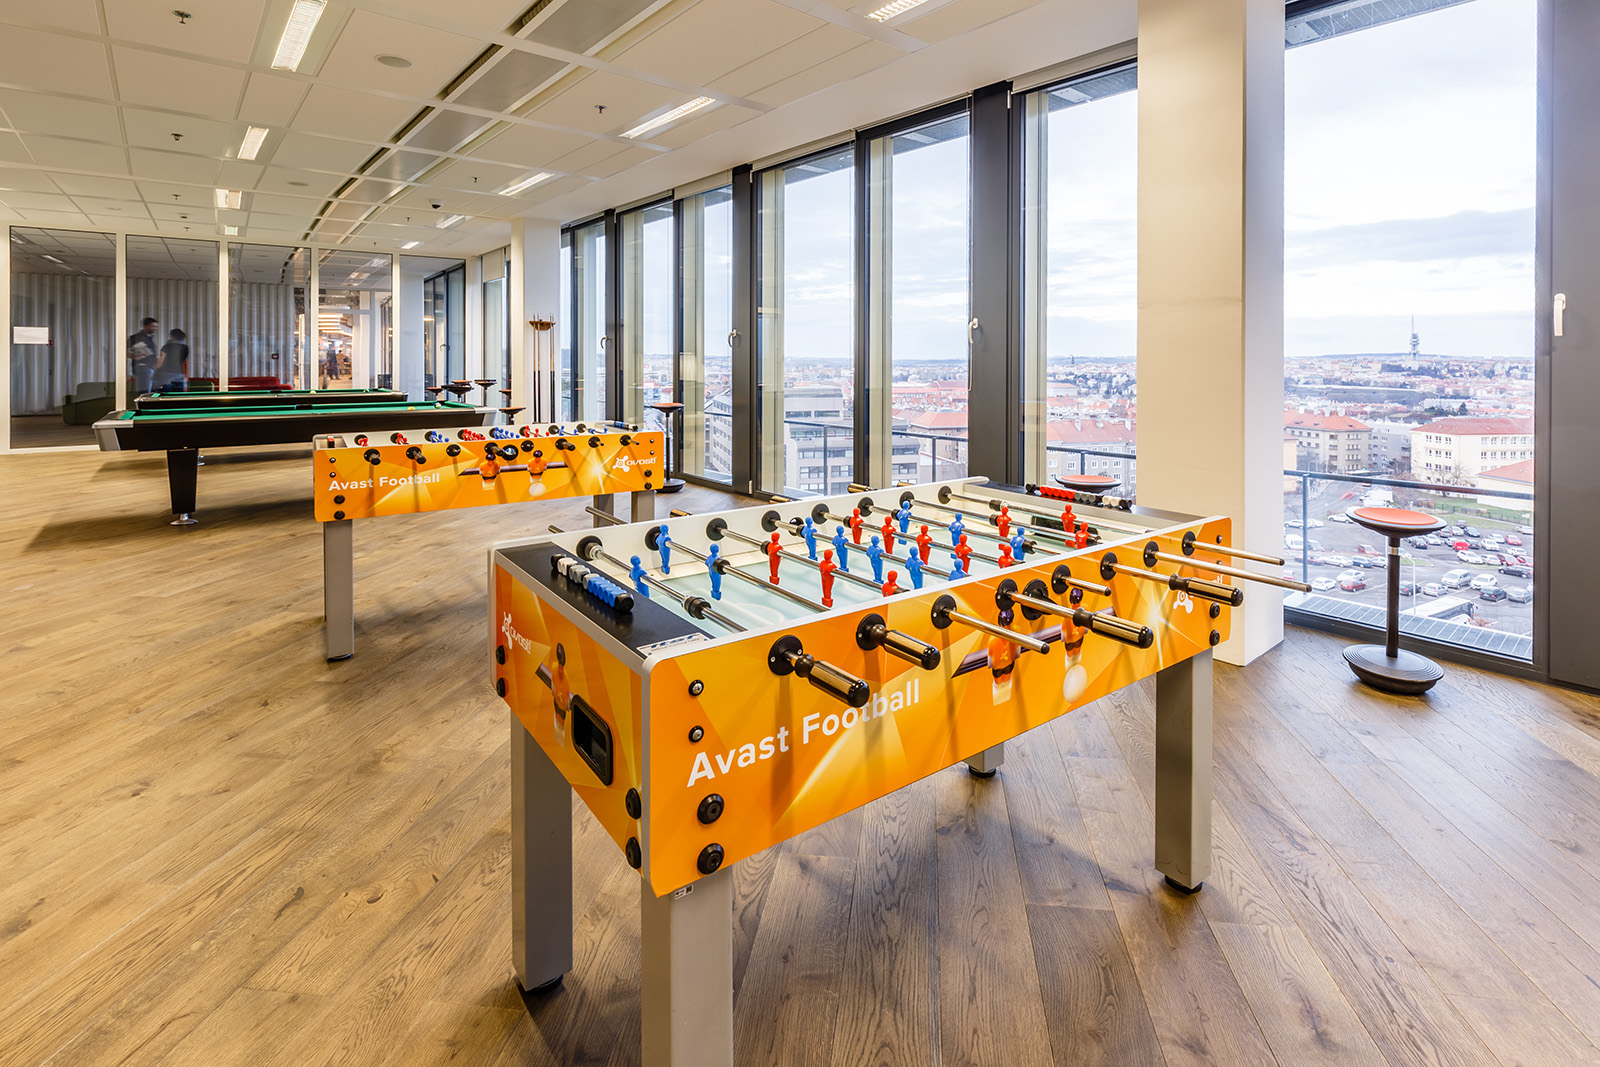 11_Pool-tables-and-tabletop-football